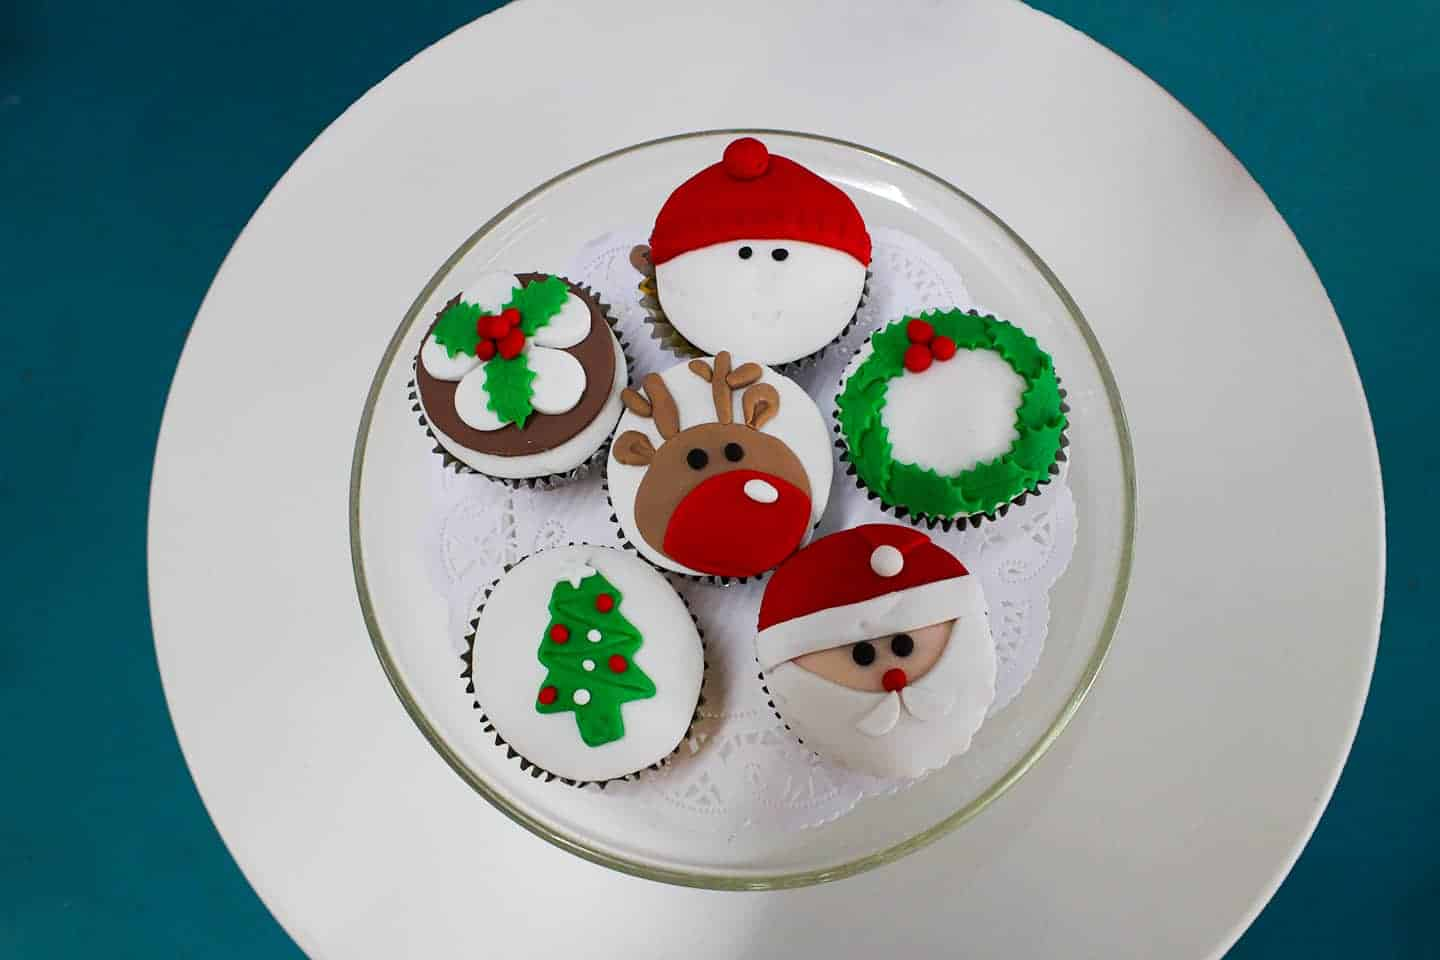 Cupcake - Christmas - classes - events - teach - learn - cake - handmade - bakery - celebration - fresh - custom - unique - Niagara Park - NSW - Sydney - CakeAndPlate.com.au - © 2019